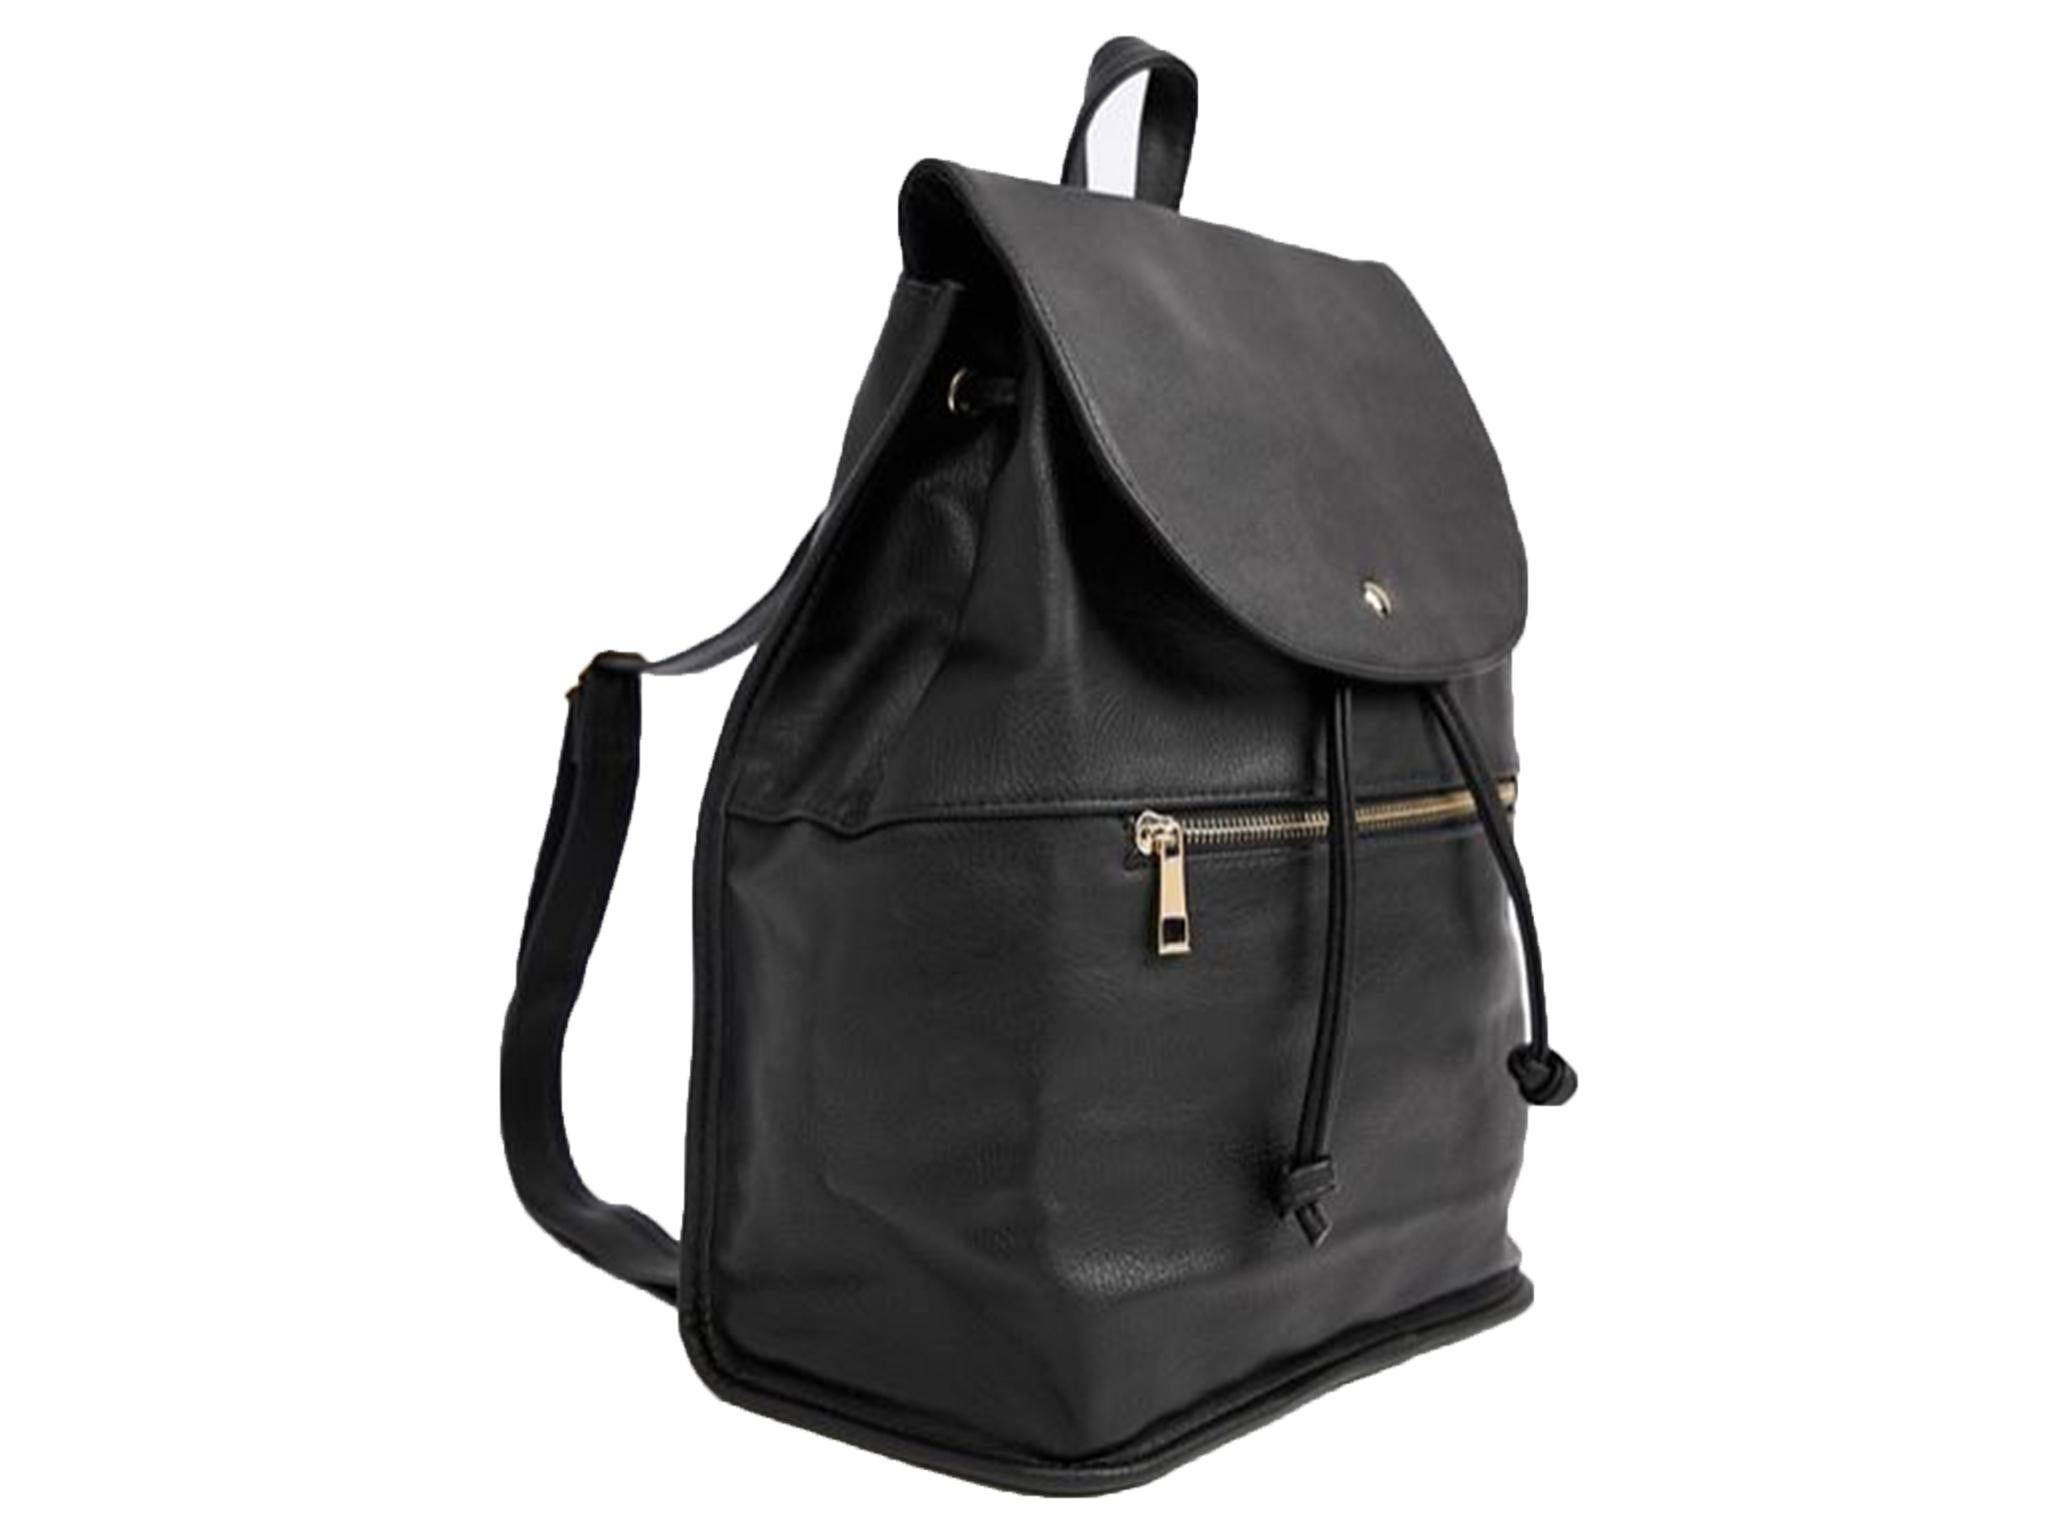 8 best backpacks for women   The Independent 0e8ef1a9ea